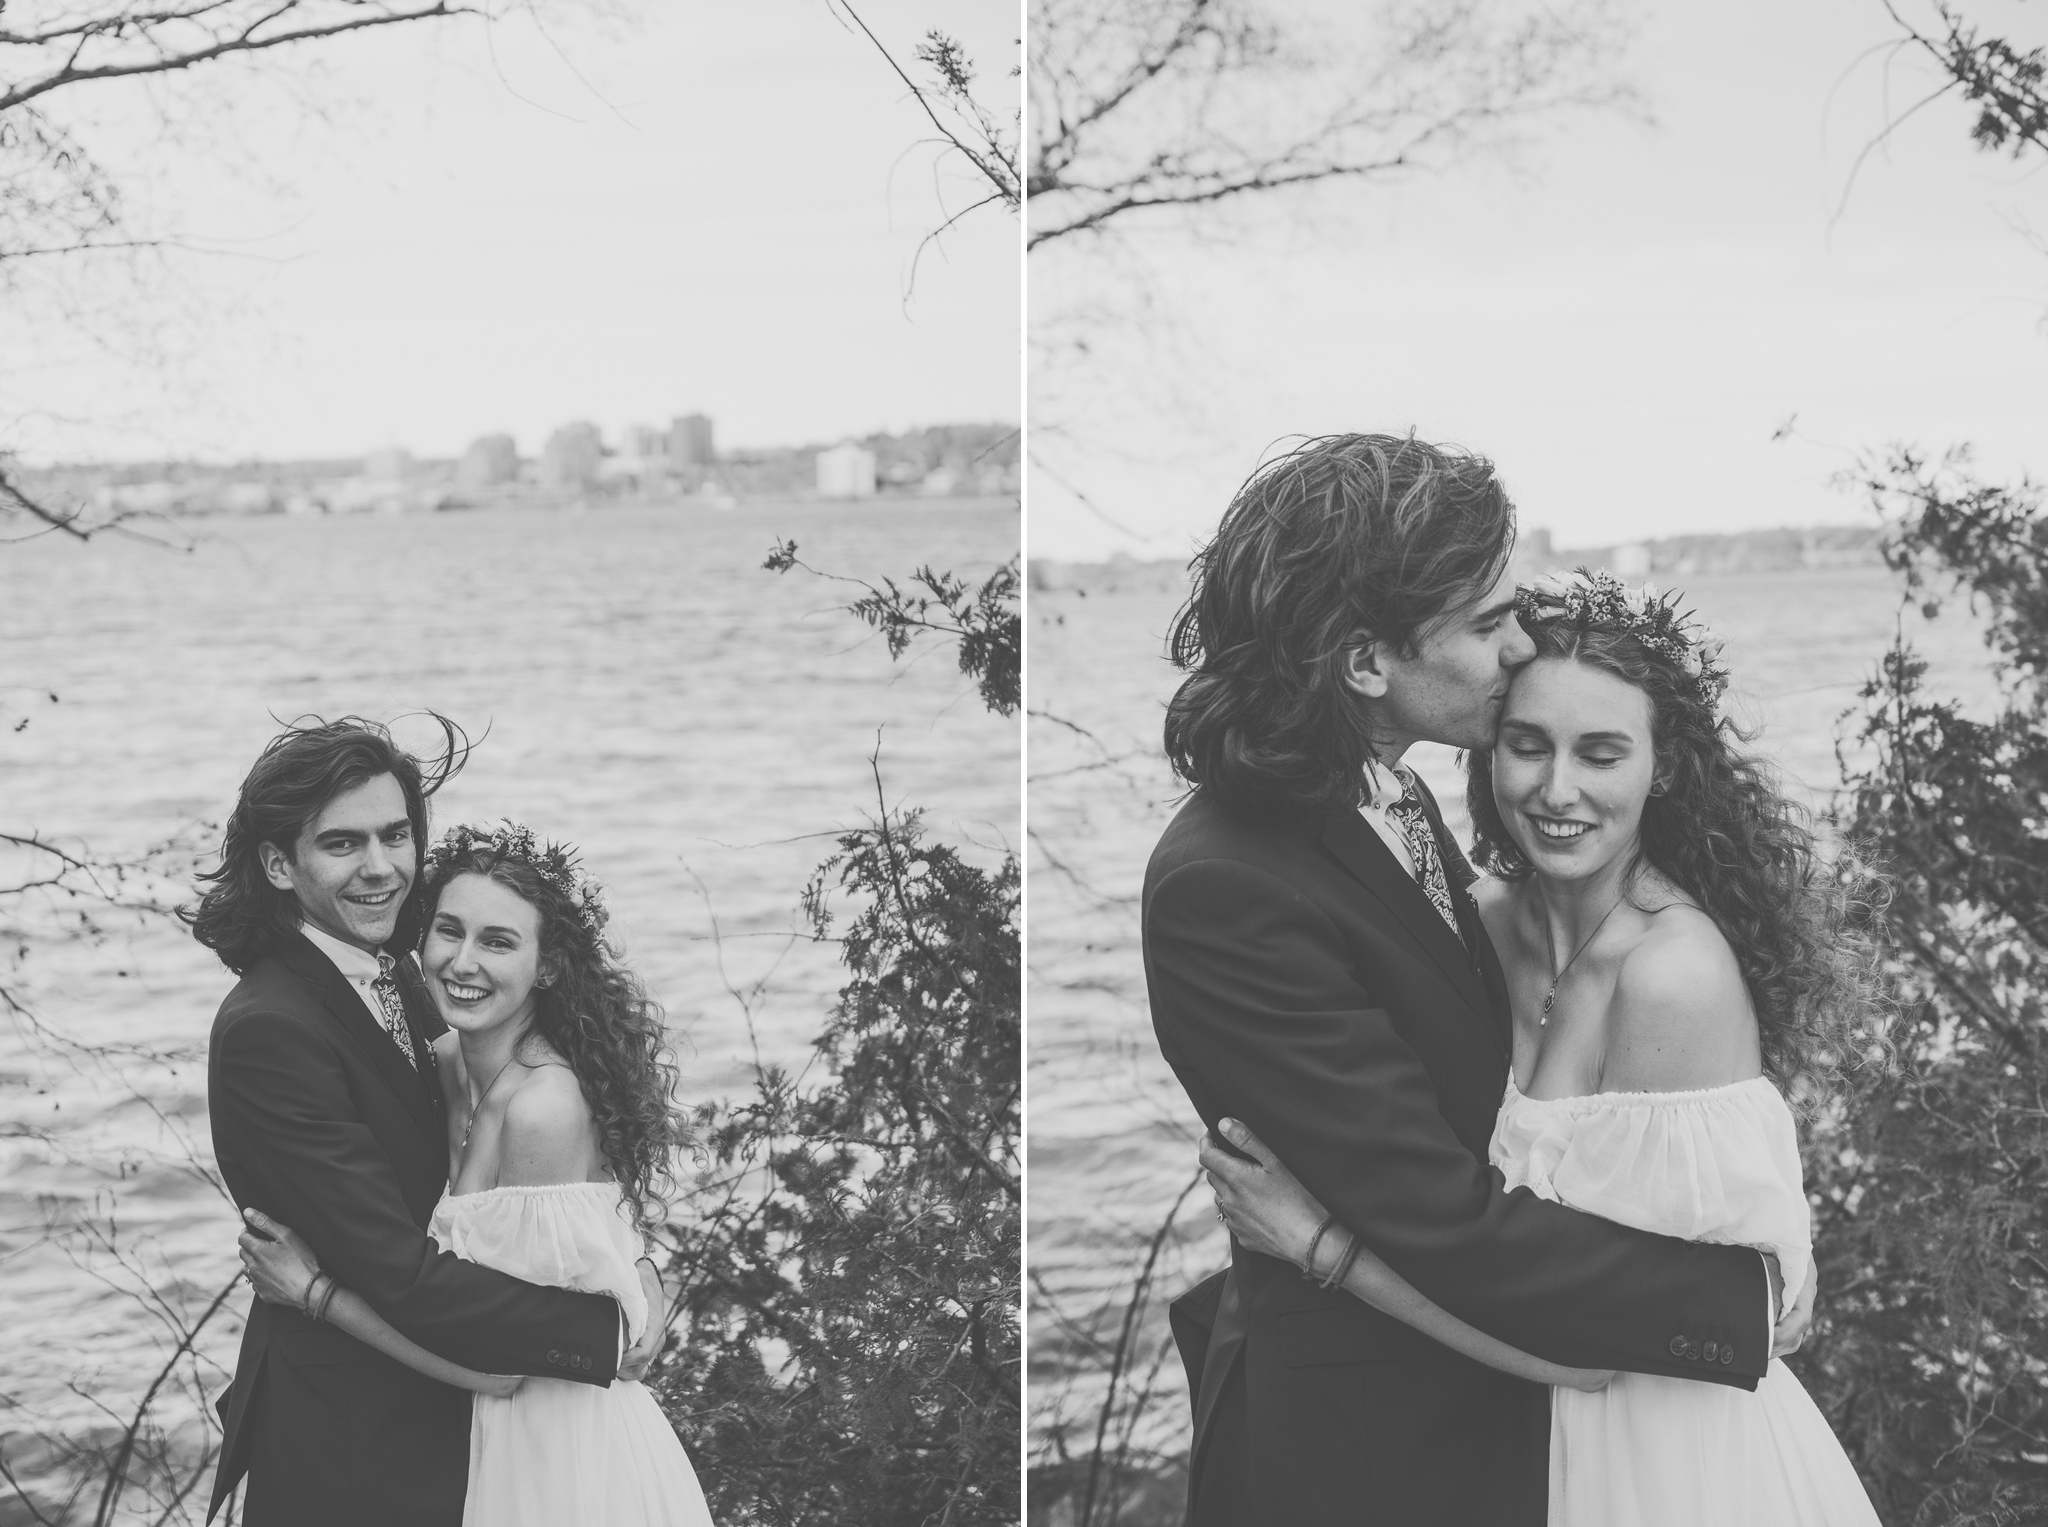 wedding, barrie wedding, barrie photographer, toronto photographer, barrie wedding photographer, toronto wedding photographer, jeannette breward photography, church, church wedding, waterfront, waterfront wedding, spring wedding, ontario wedding, couple, floral crown, religious ceremony, boho bride, boho wedding, bohemian wedding, floral crown, emotional, emotions, emotional wedding, black and white, ceremony, bridesmaids, wedding party, woods, forest, woods wedding, forest wedding, southshore centre, southshore community centre, barrie southshore community centre, barrie southshore centre